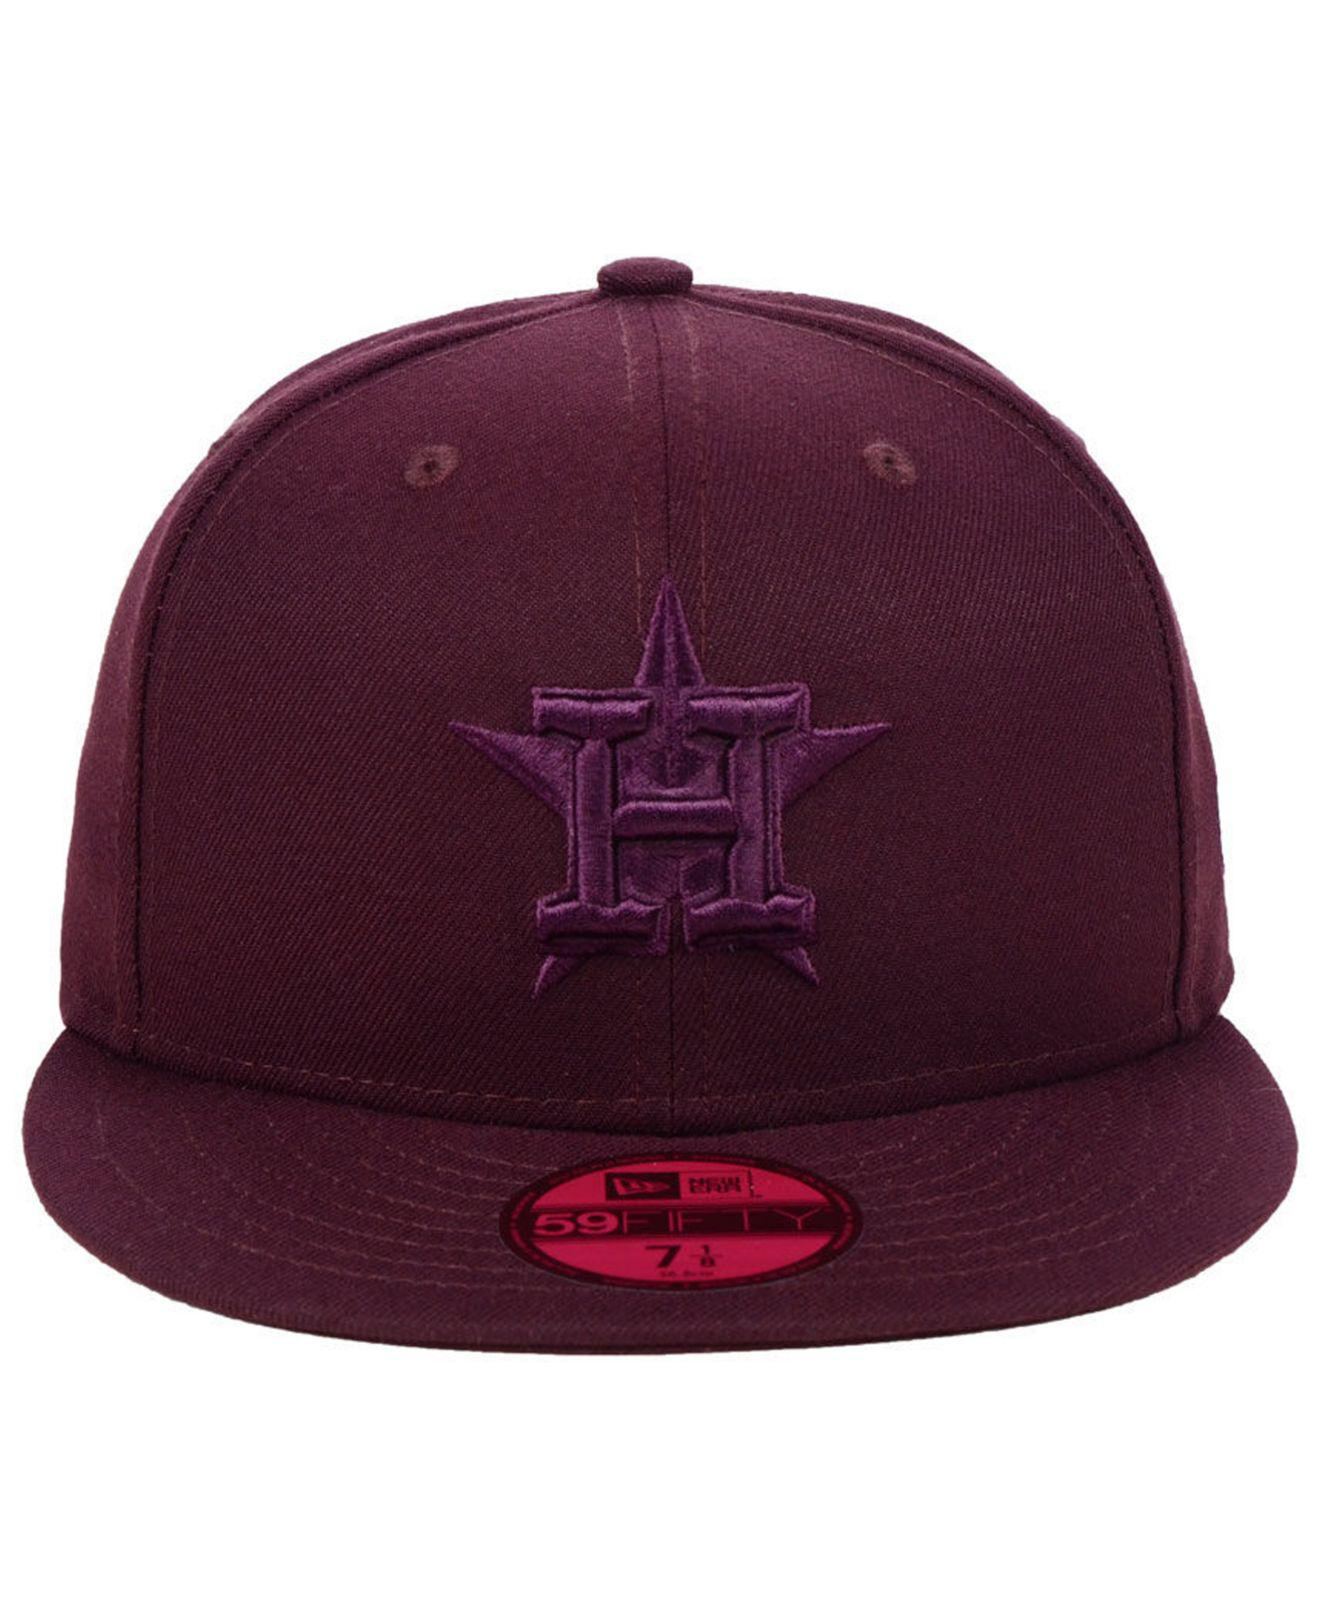 online store ad416 08a85 ... spain lyst ktz houston astros fall prism pack 59fifty fitted cap in  purple for men 92dca